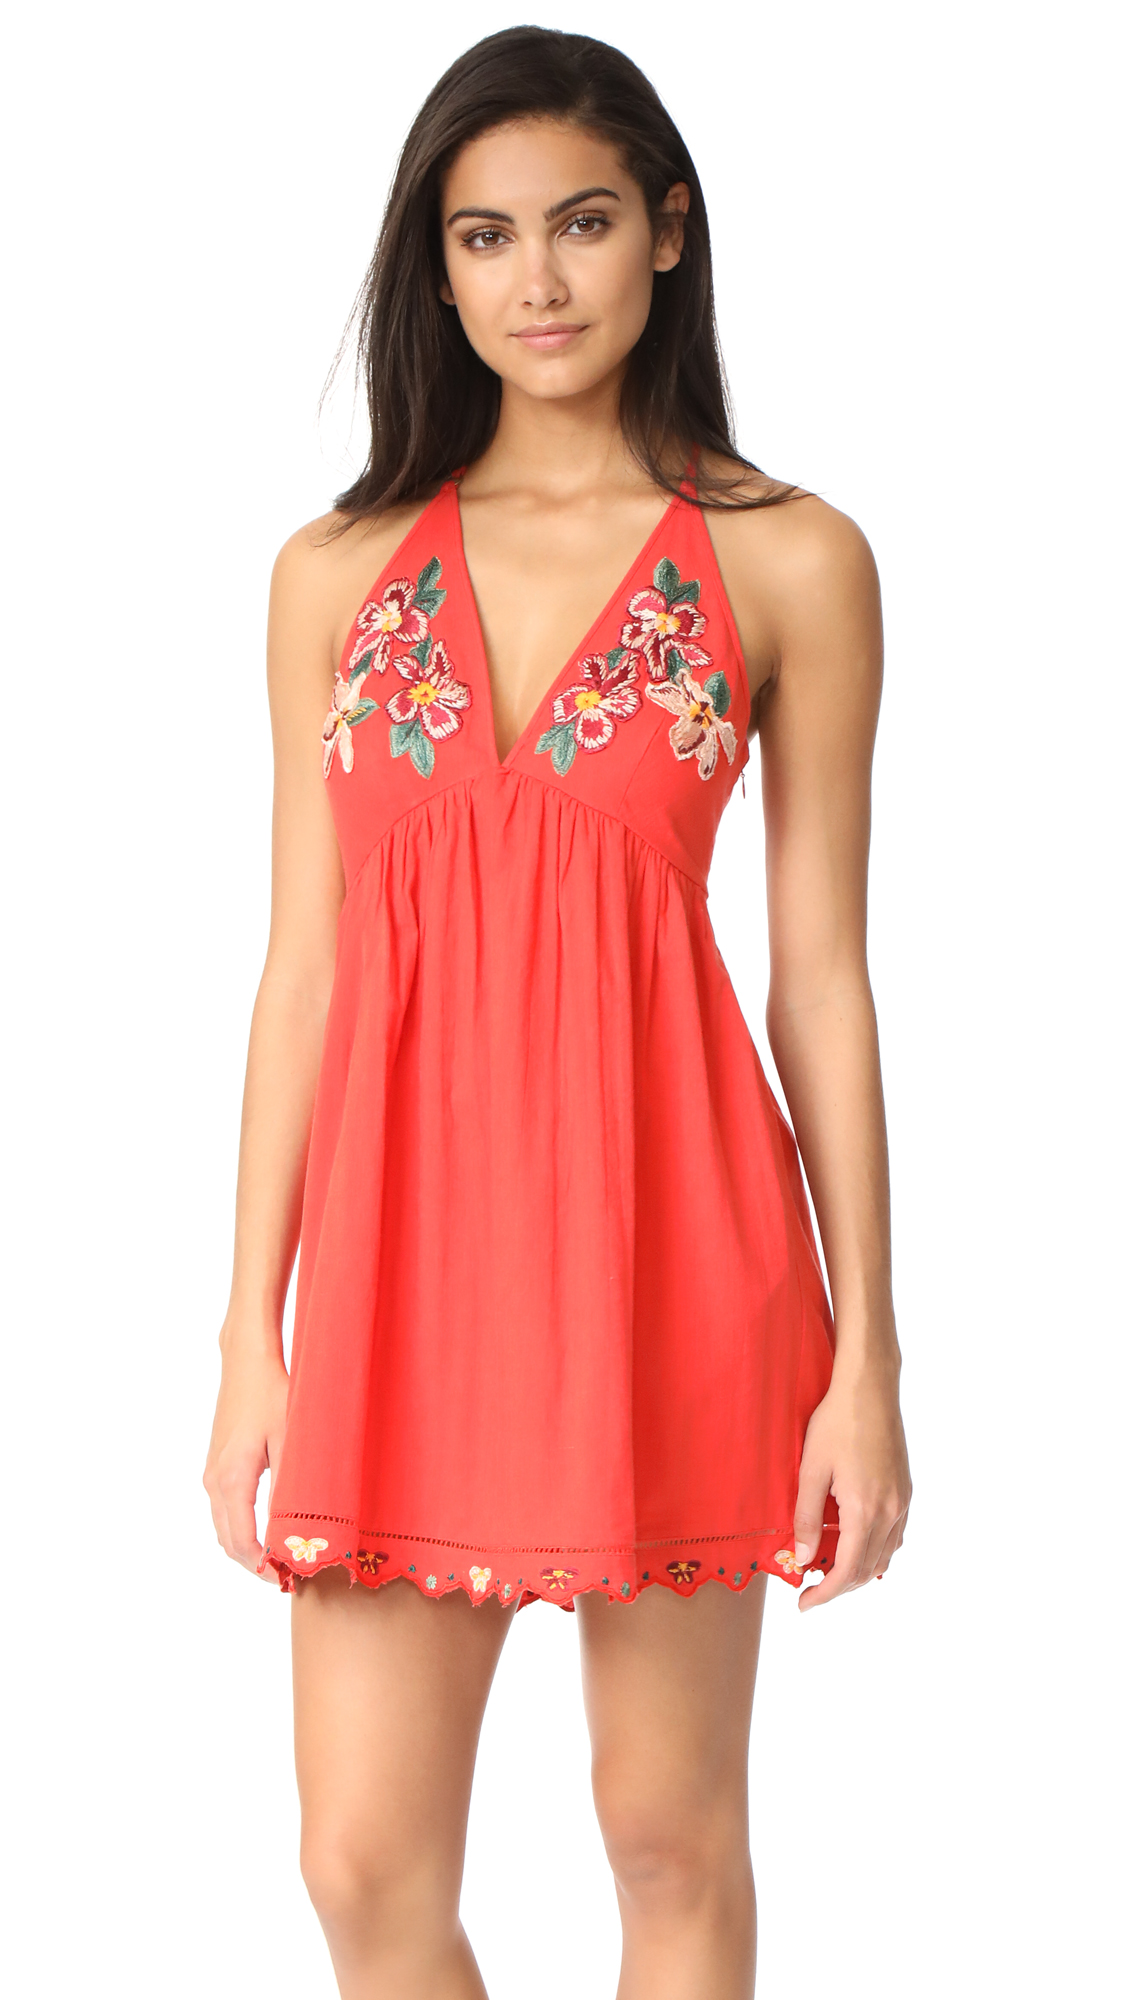 Free People Love & Flowers Dress